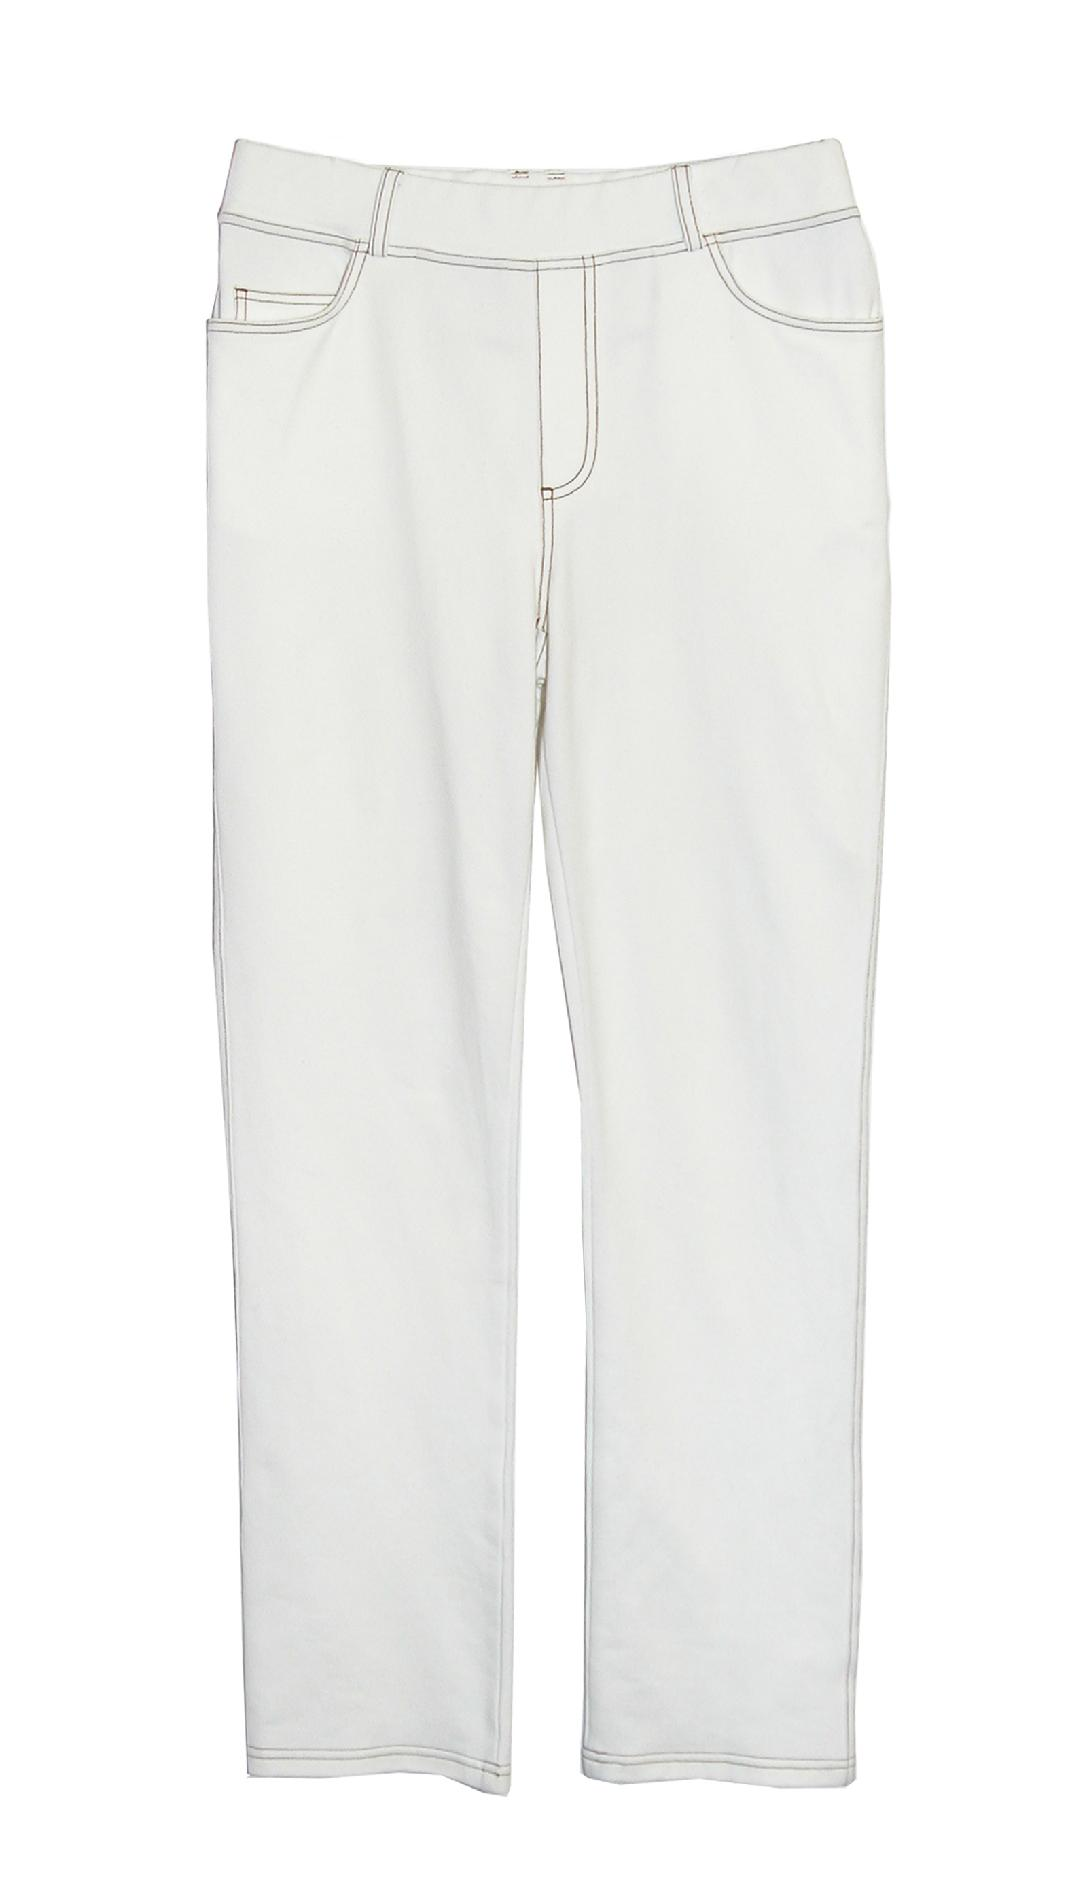 La Cera Women's The All Seasons Pant at Sears.com